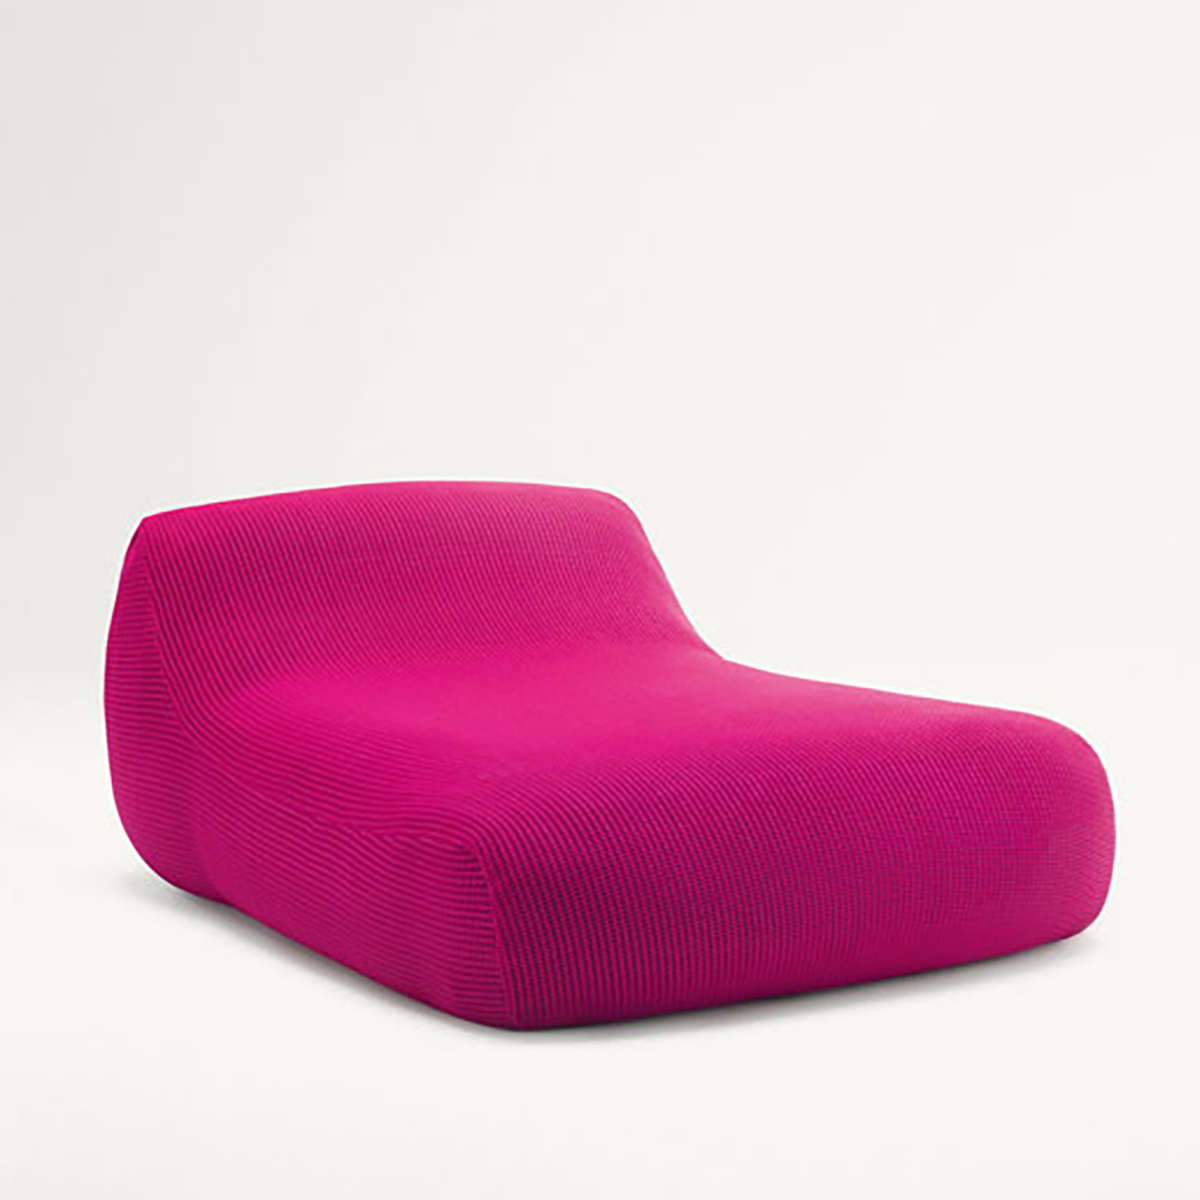 Paolala Lenti Float Daybed